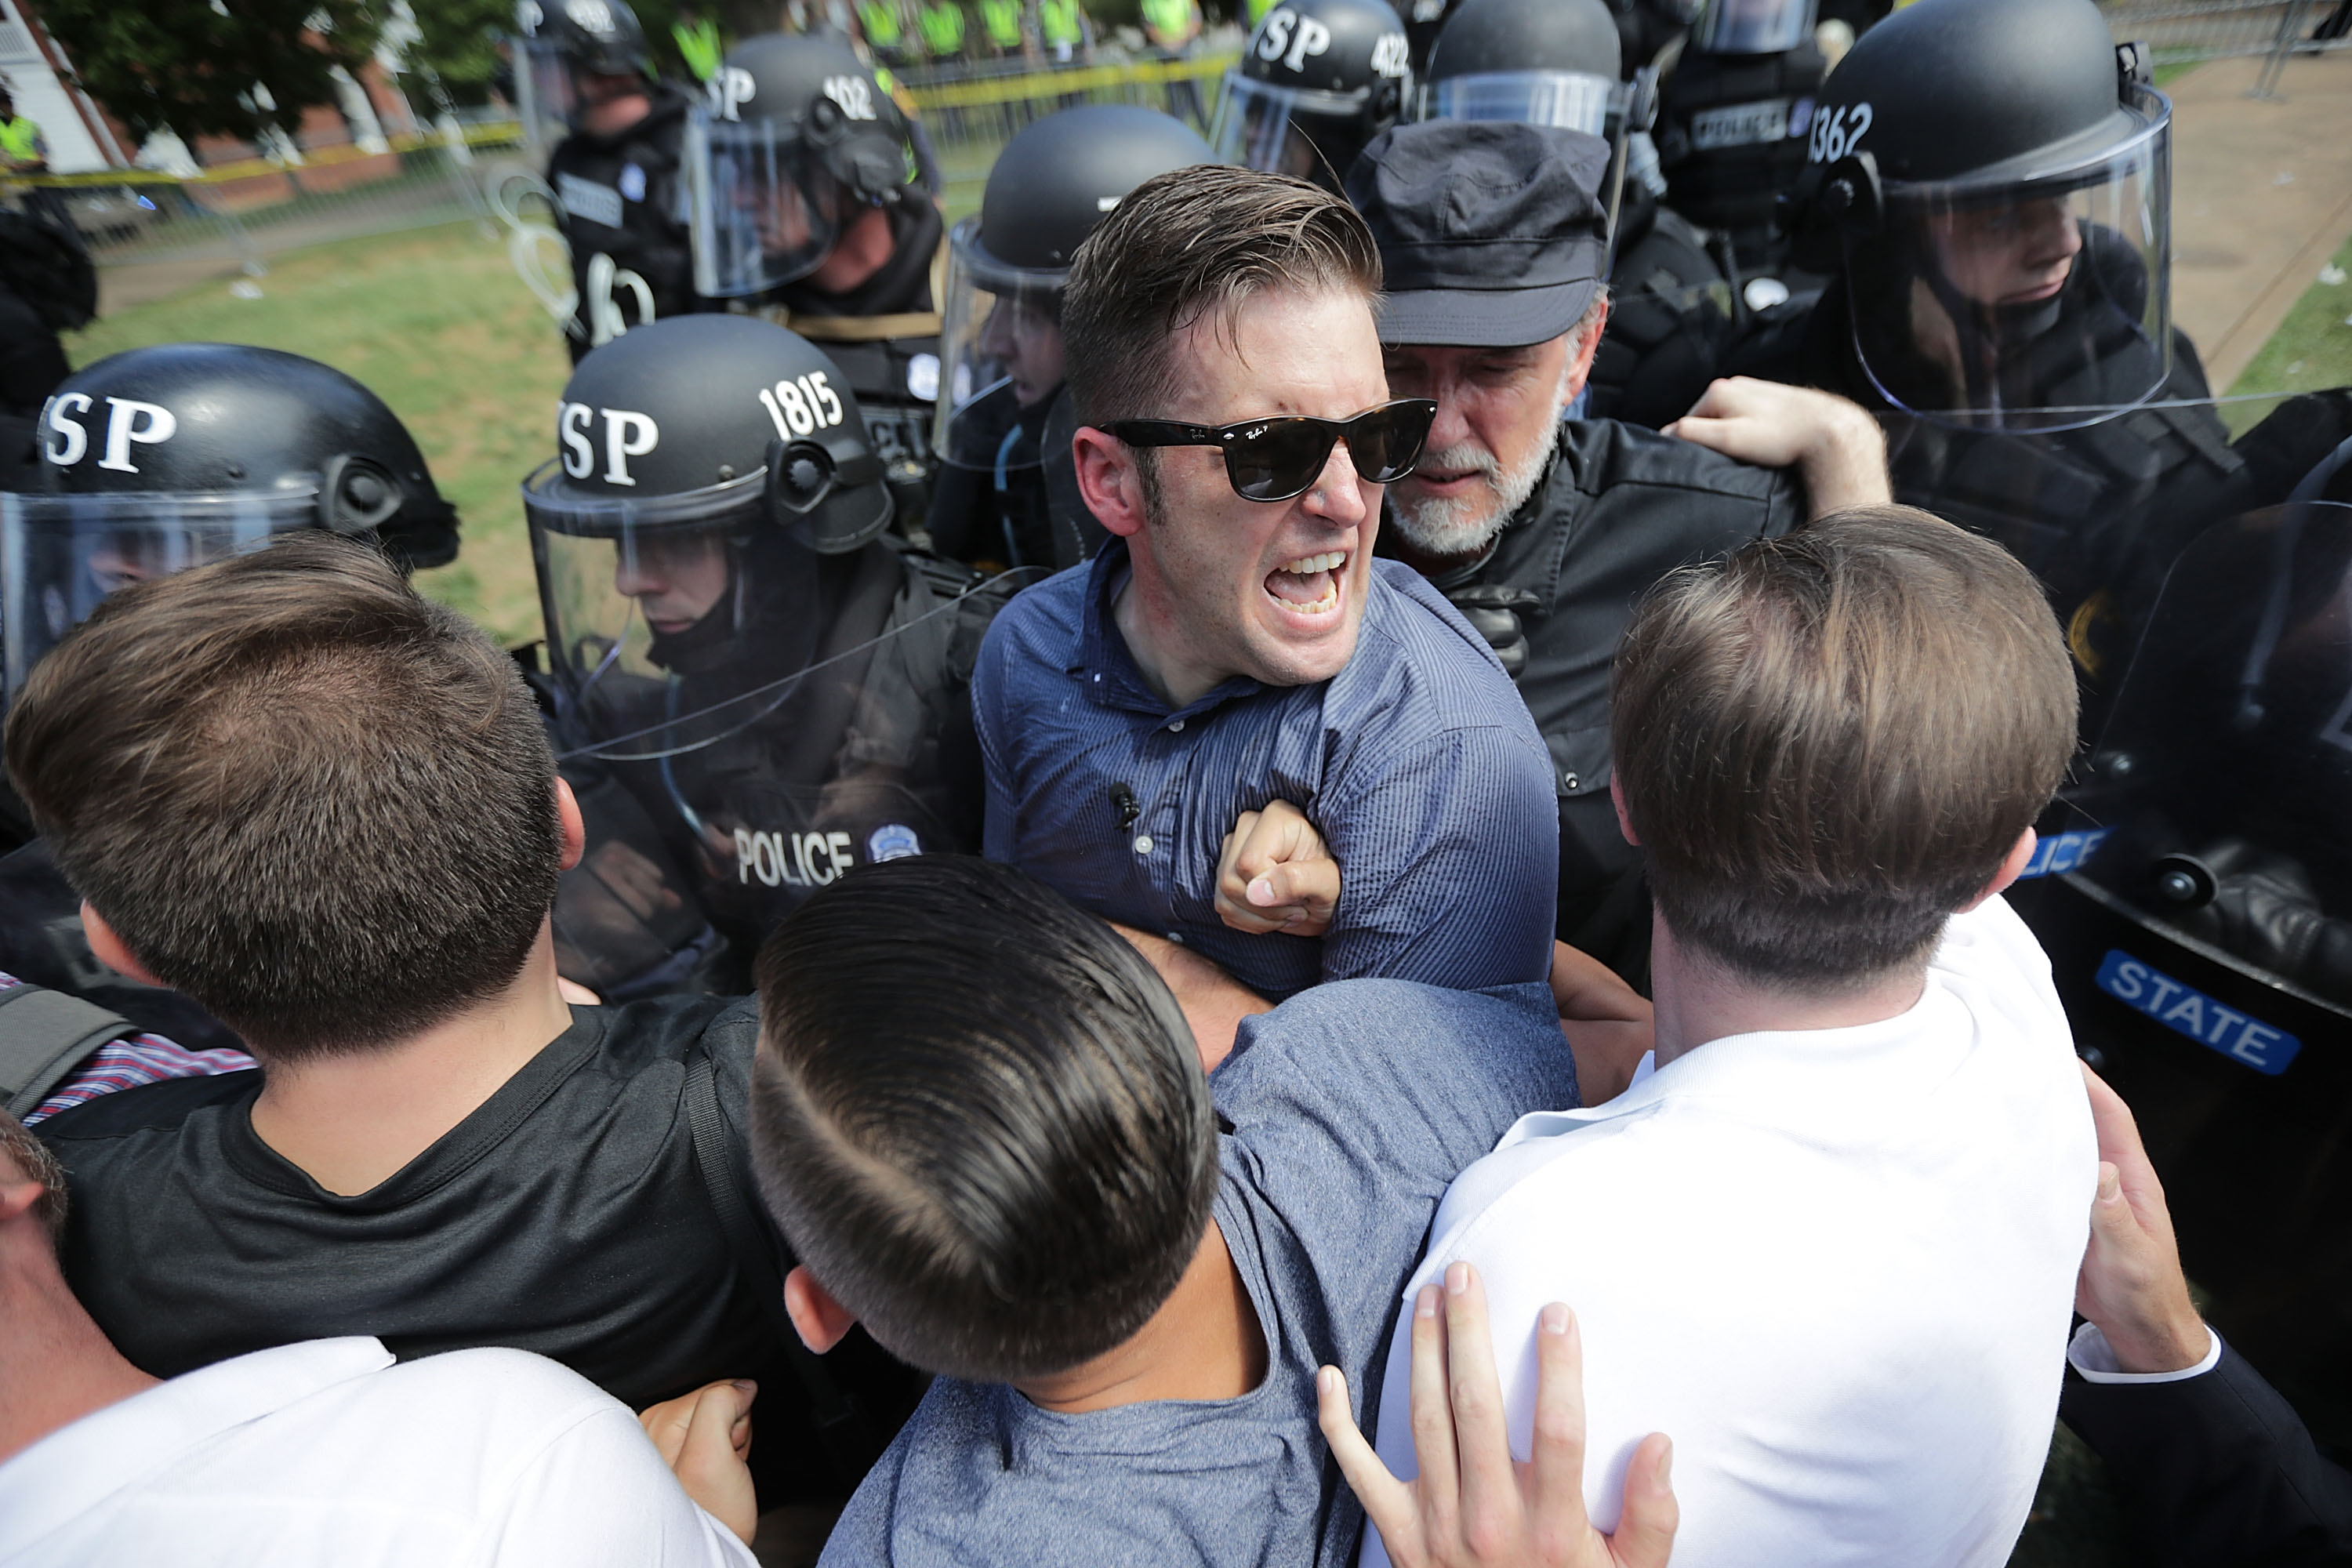 White nationalist Richard Spencer and his supporters clash with Virginia State Police in Charlottesville, VA. on Aug. 12, 2017